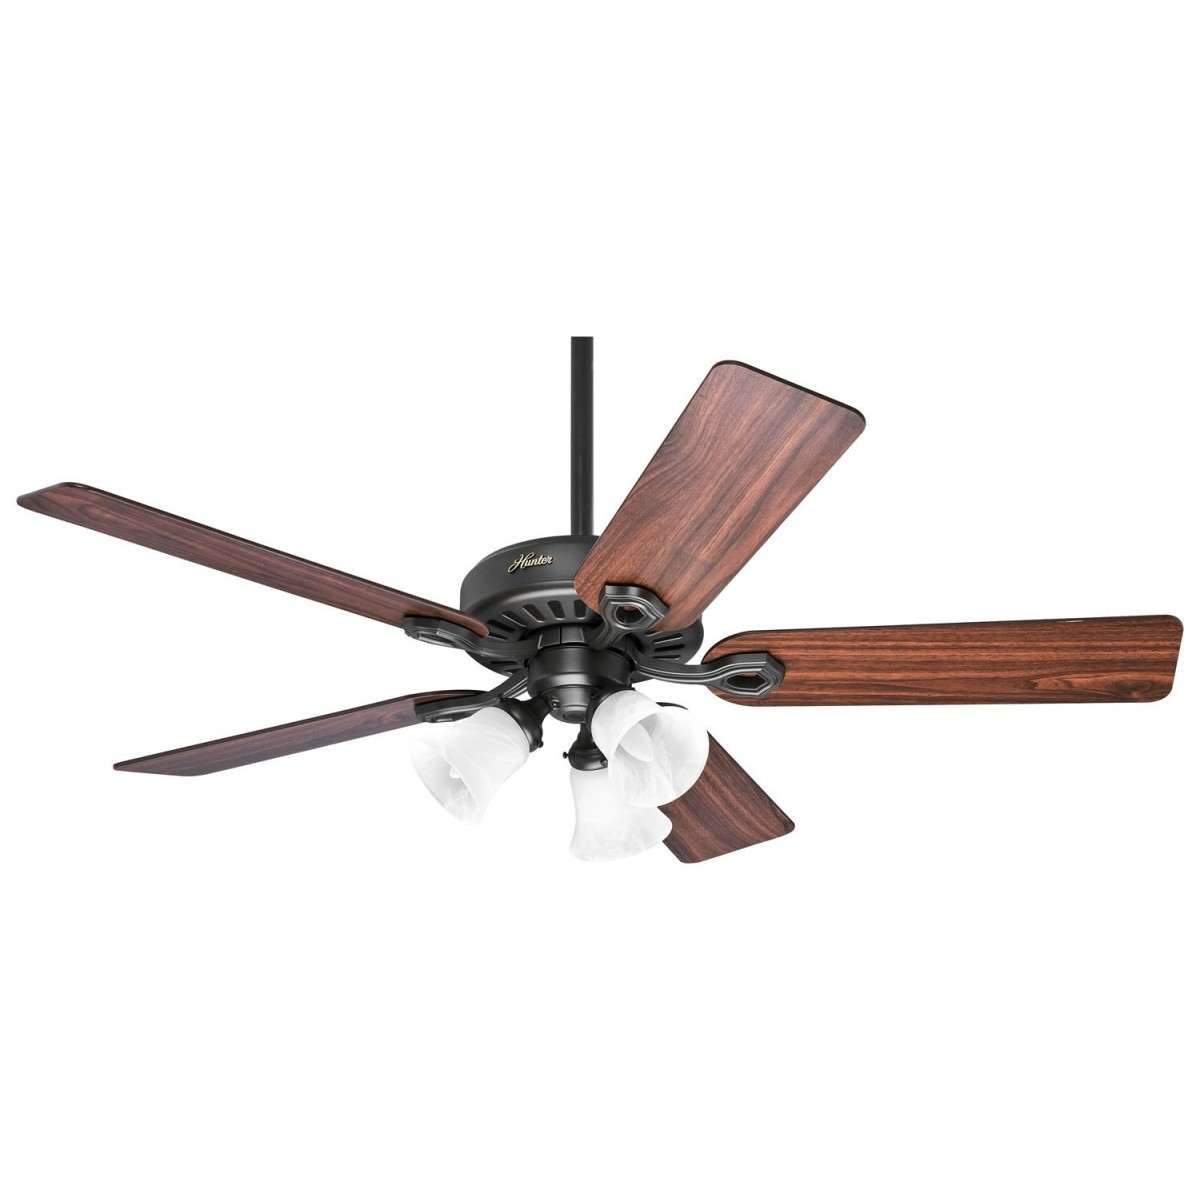 Ventilador de Teto BUILDER PLUS - Hunter - 5 Pás - Bronze Novo